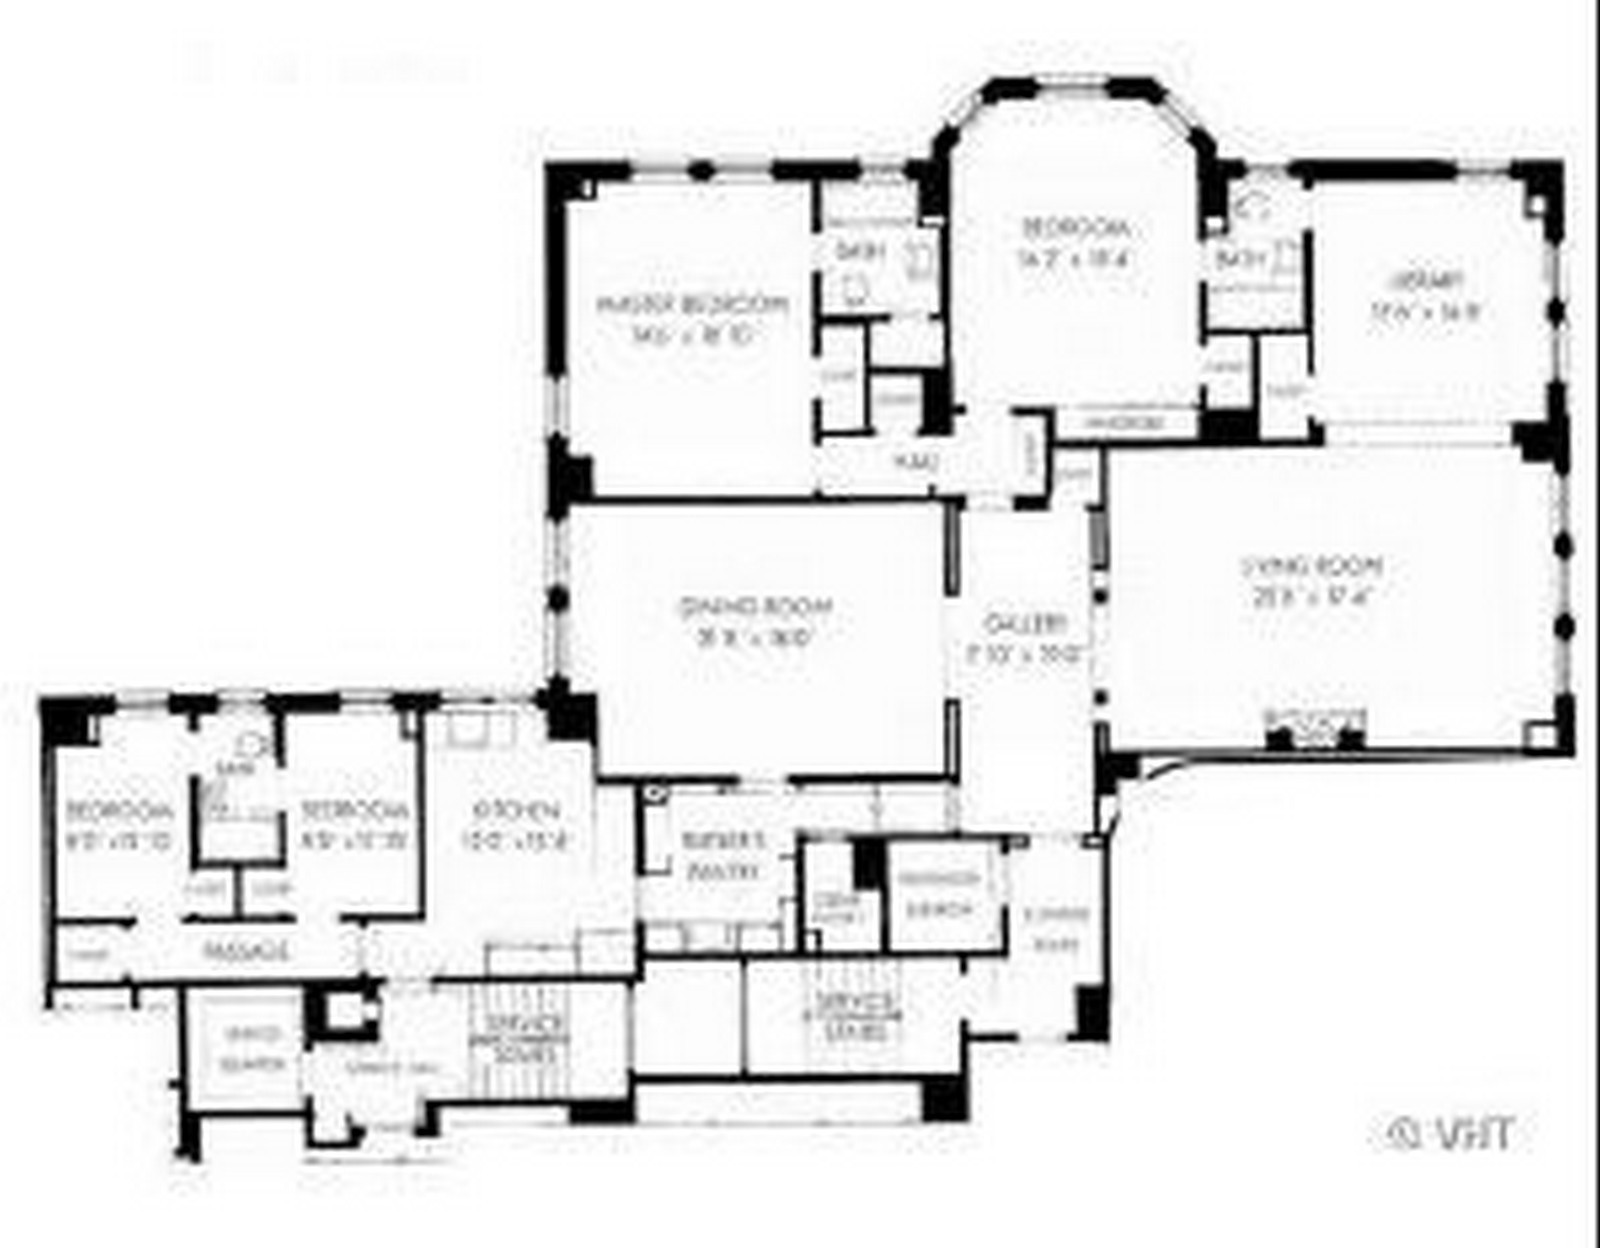 2440 n lakeview 7a chicago il 60614 virtual tour for Floor plan com